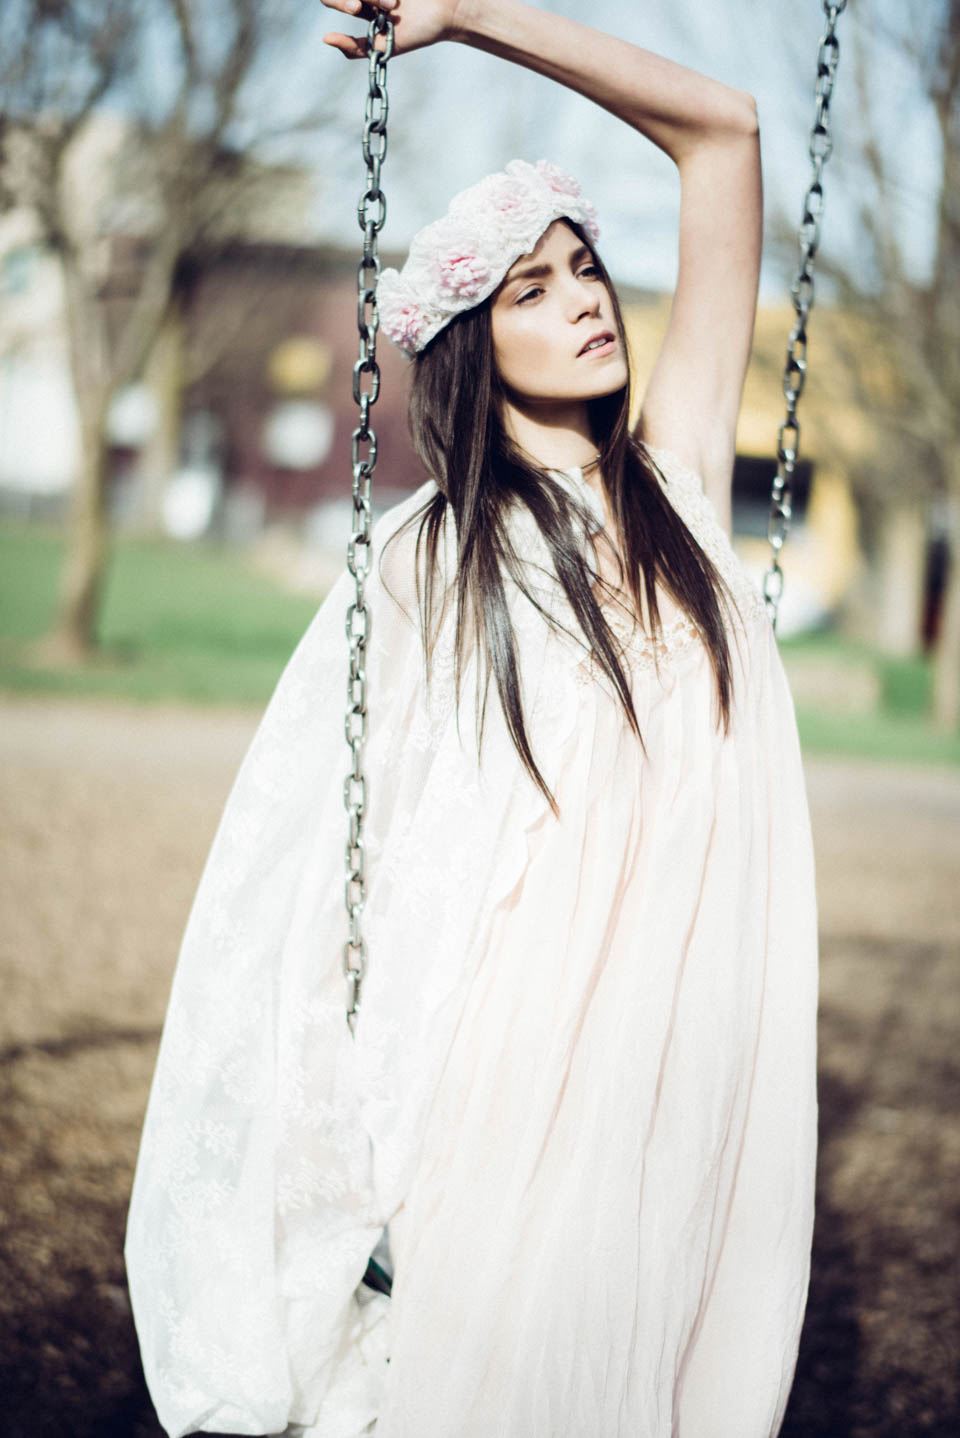 fashion editorial for jute shot in portland by fashion photographer erika astrid_45.jpg